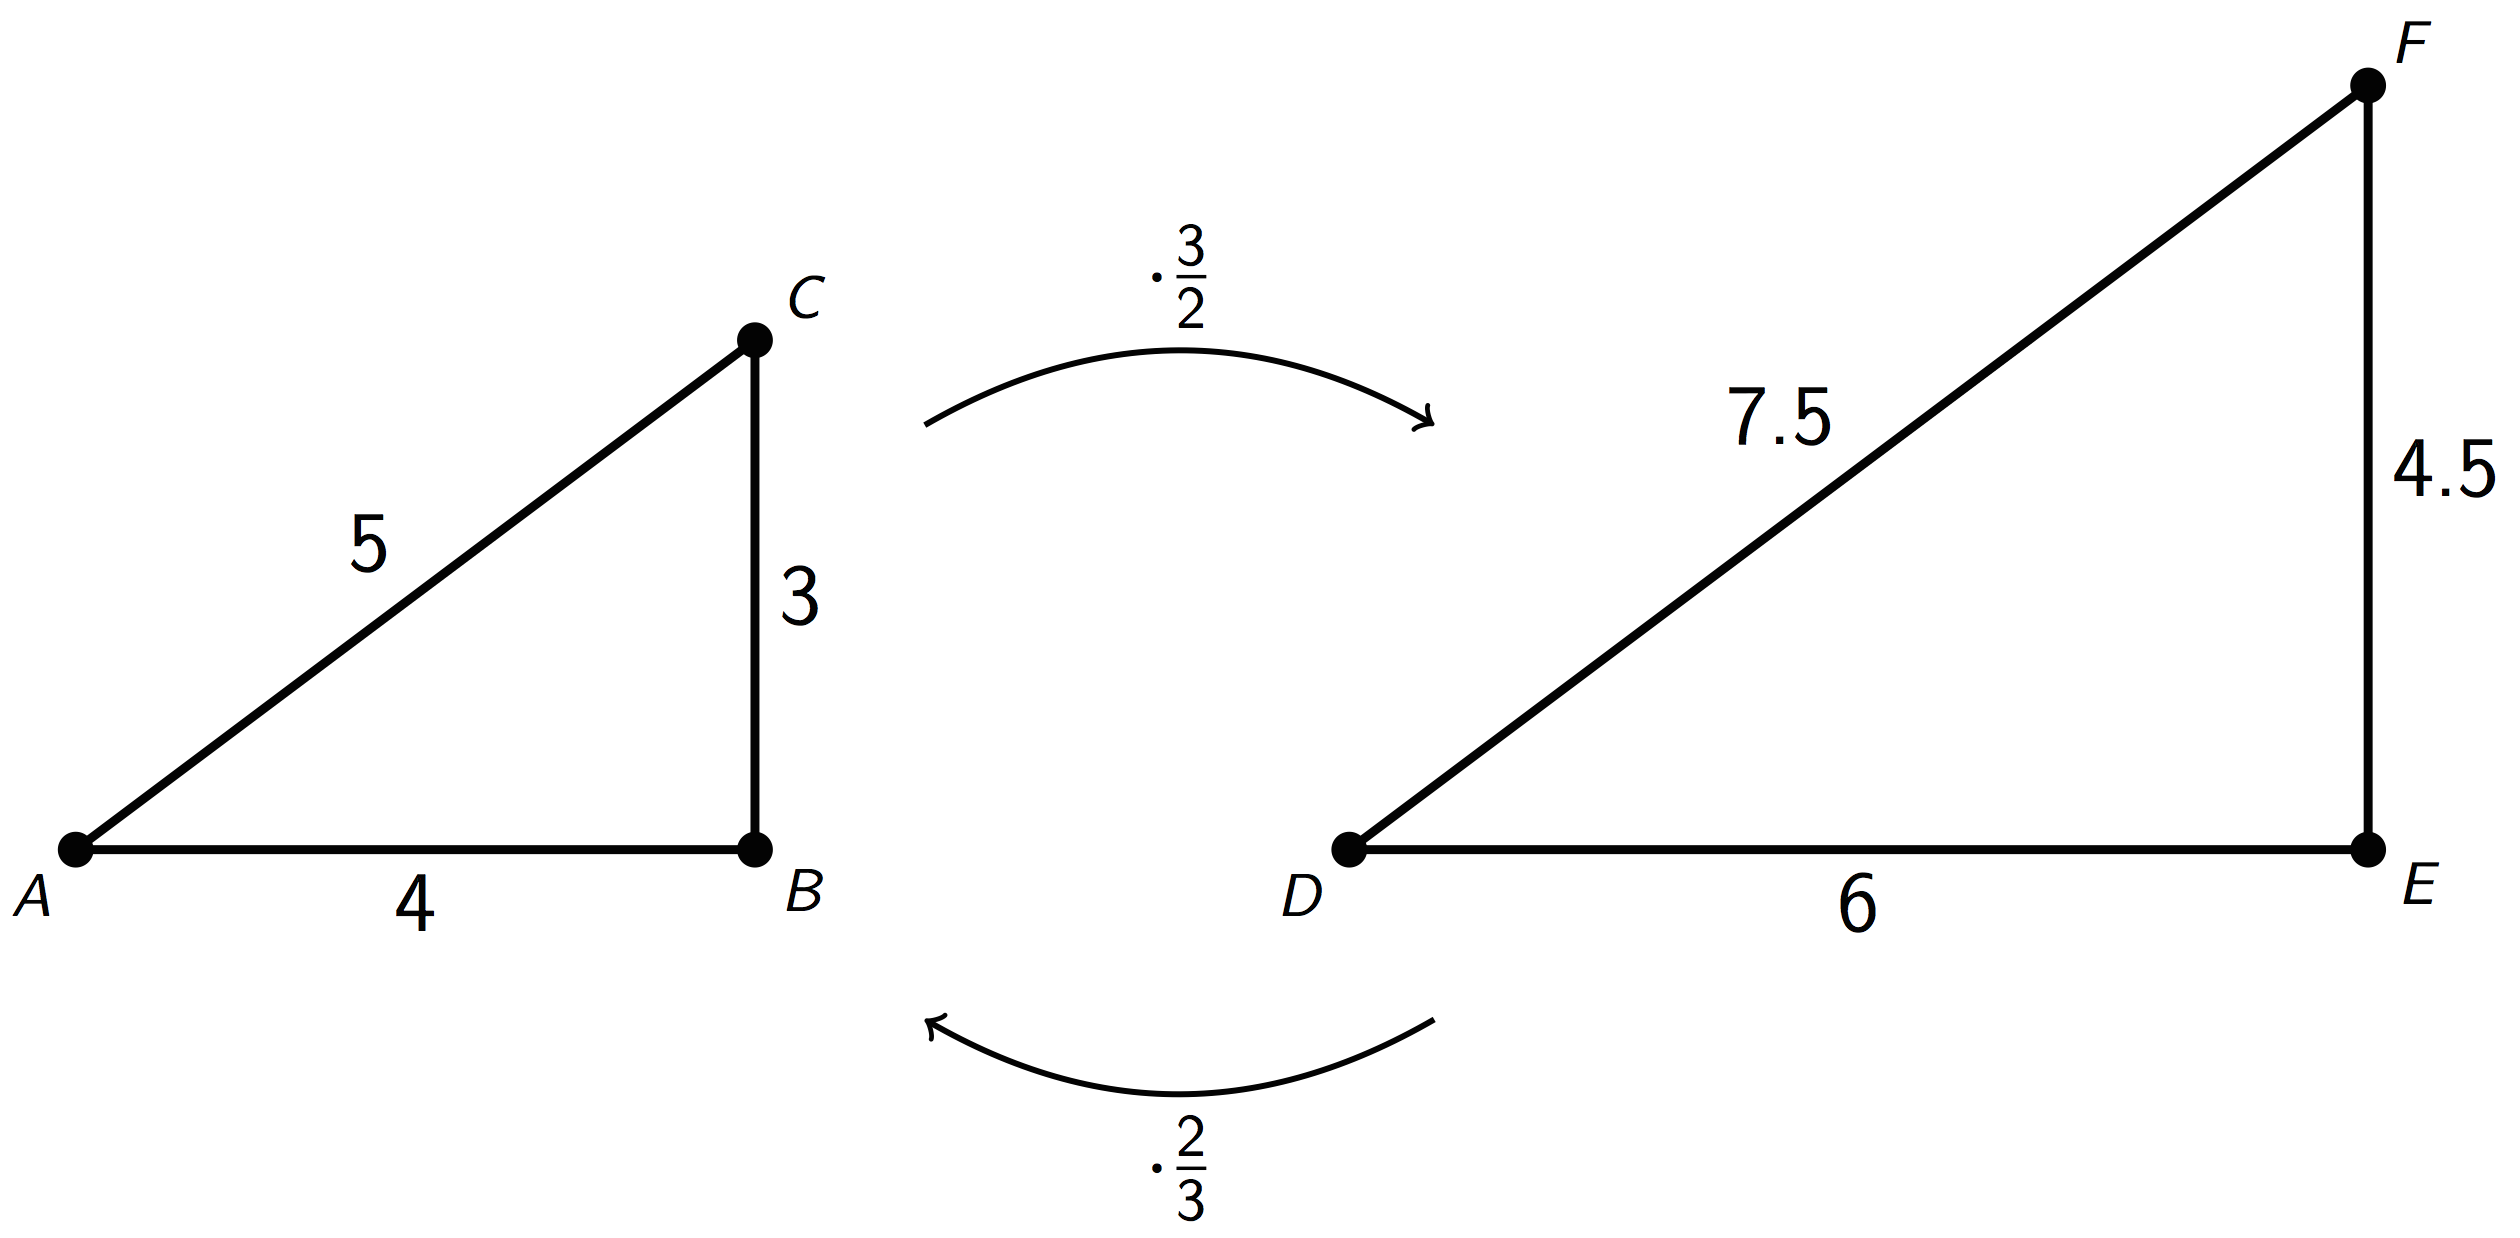 Two triangles; one labeled A B C with horizontal A B and the other D E F with horizontal D E. The length of A B is labeled 4. The length of B C is labeled 3. The length of C A is labeled 5. The length of D E is labeled 6. The length of E F is labeled 4.5. The length of F D is labeled 7.5. An arrow from triangle A B C pointing to triangle D E F is labeled, times 3 halves. An arrow from triangle D E F pointing to triangle A B C is labeled times 2 thirds.